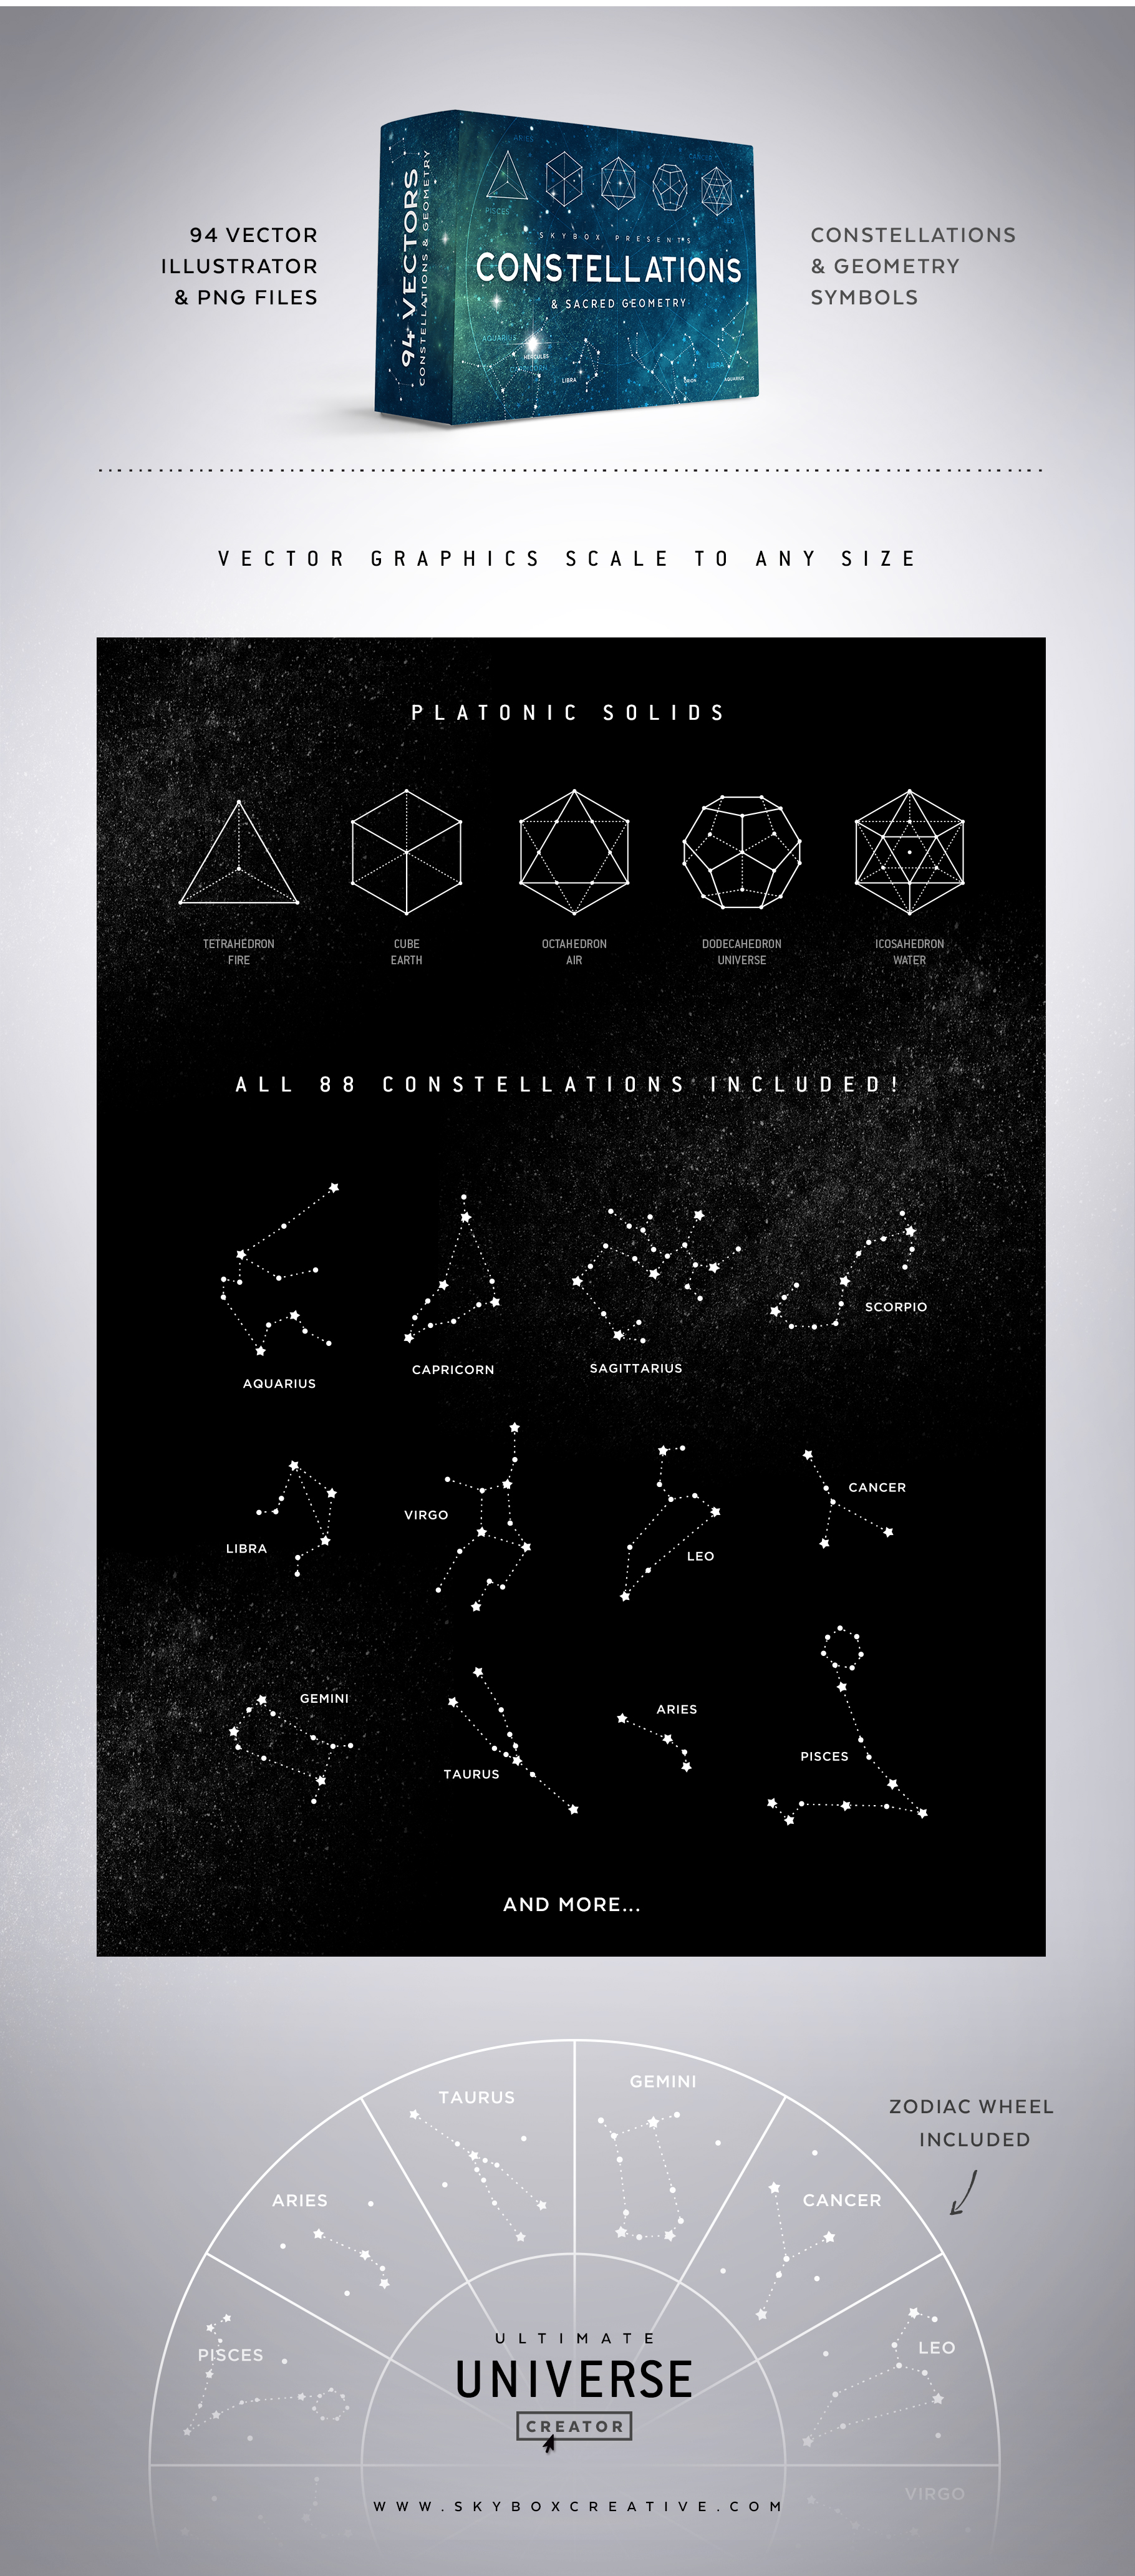 Constellations & Saced Geometry